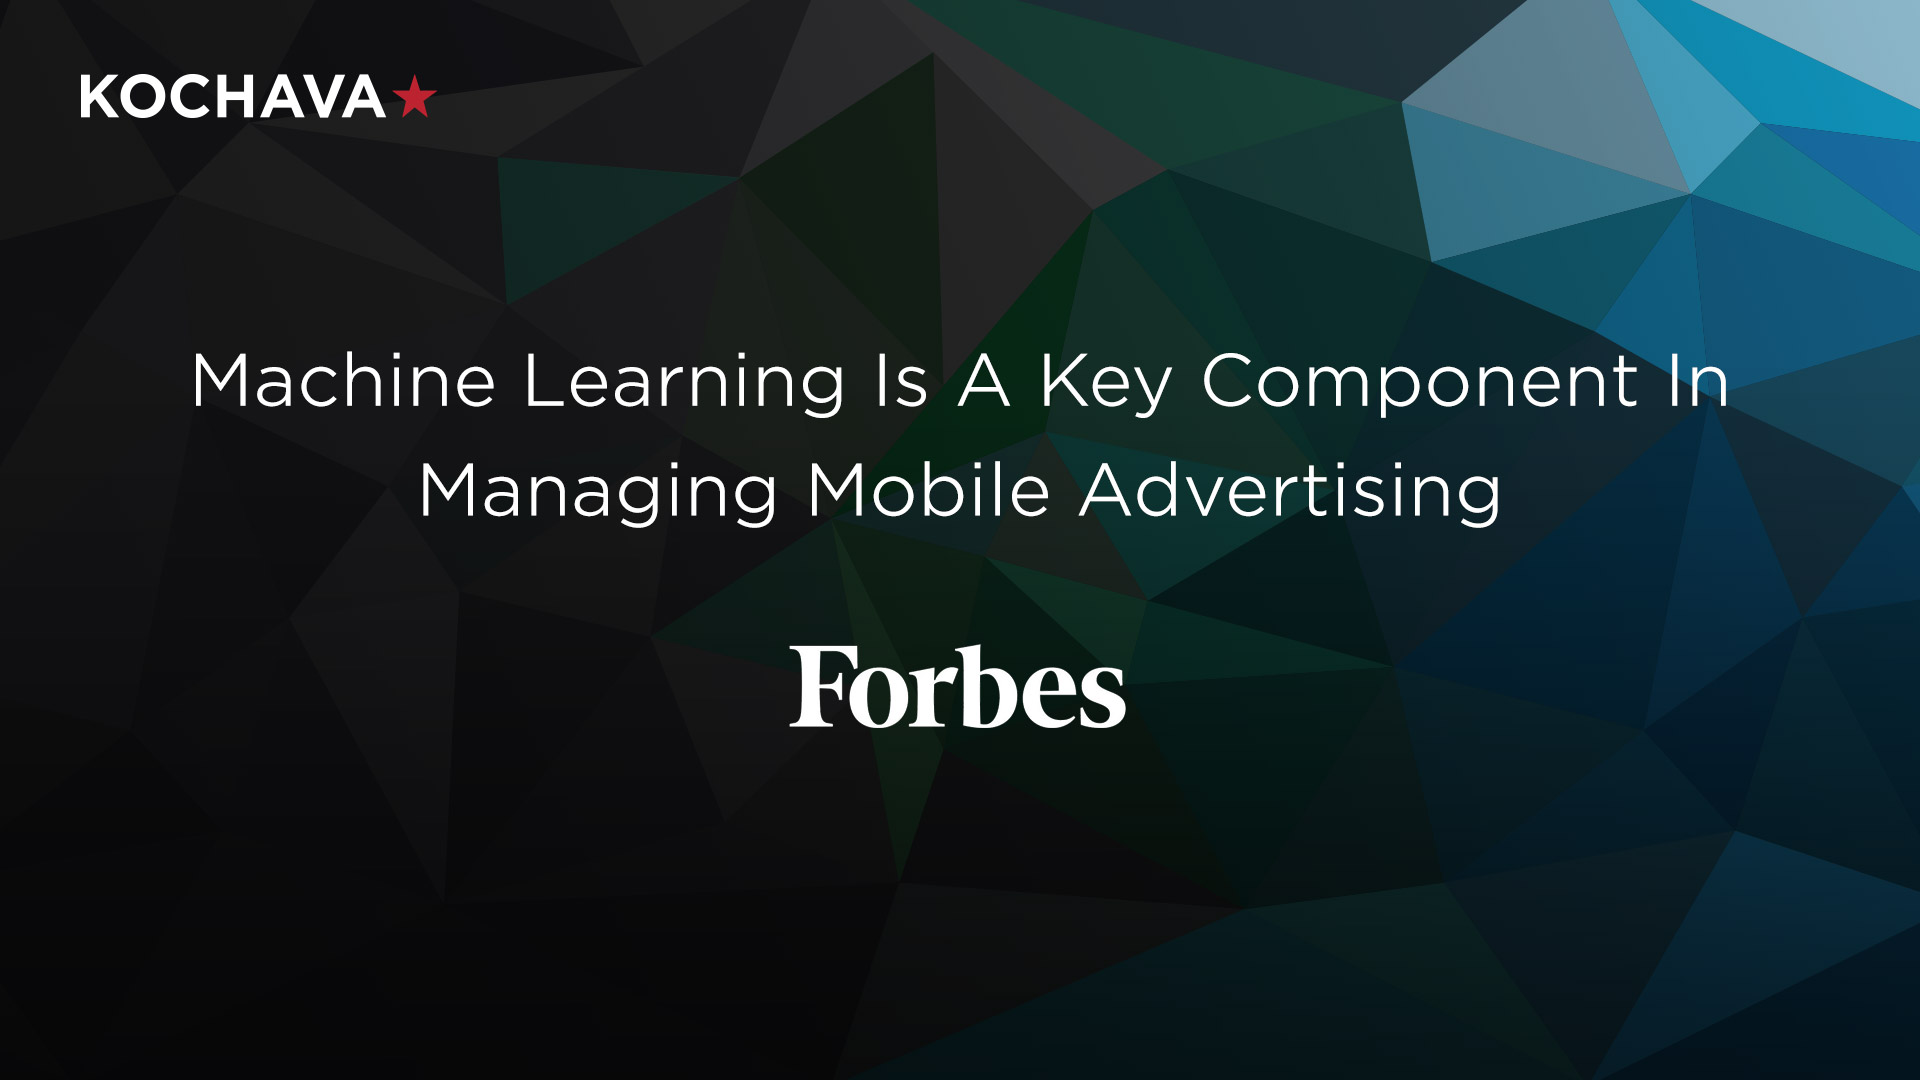 Forbes Machine Learning and mobile Advertising